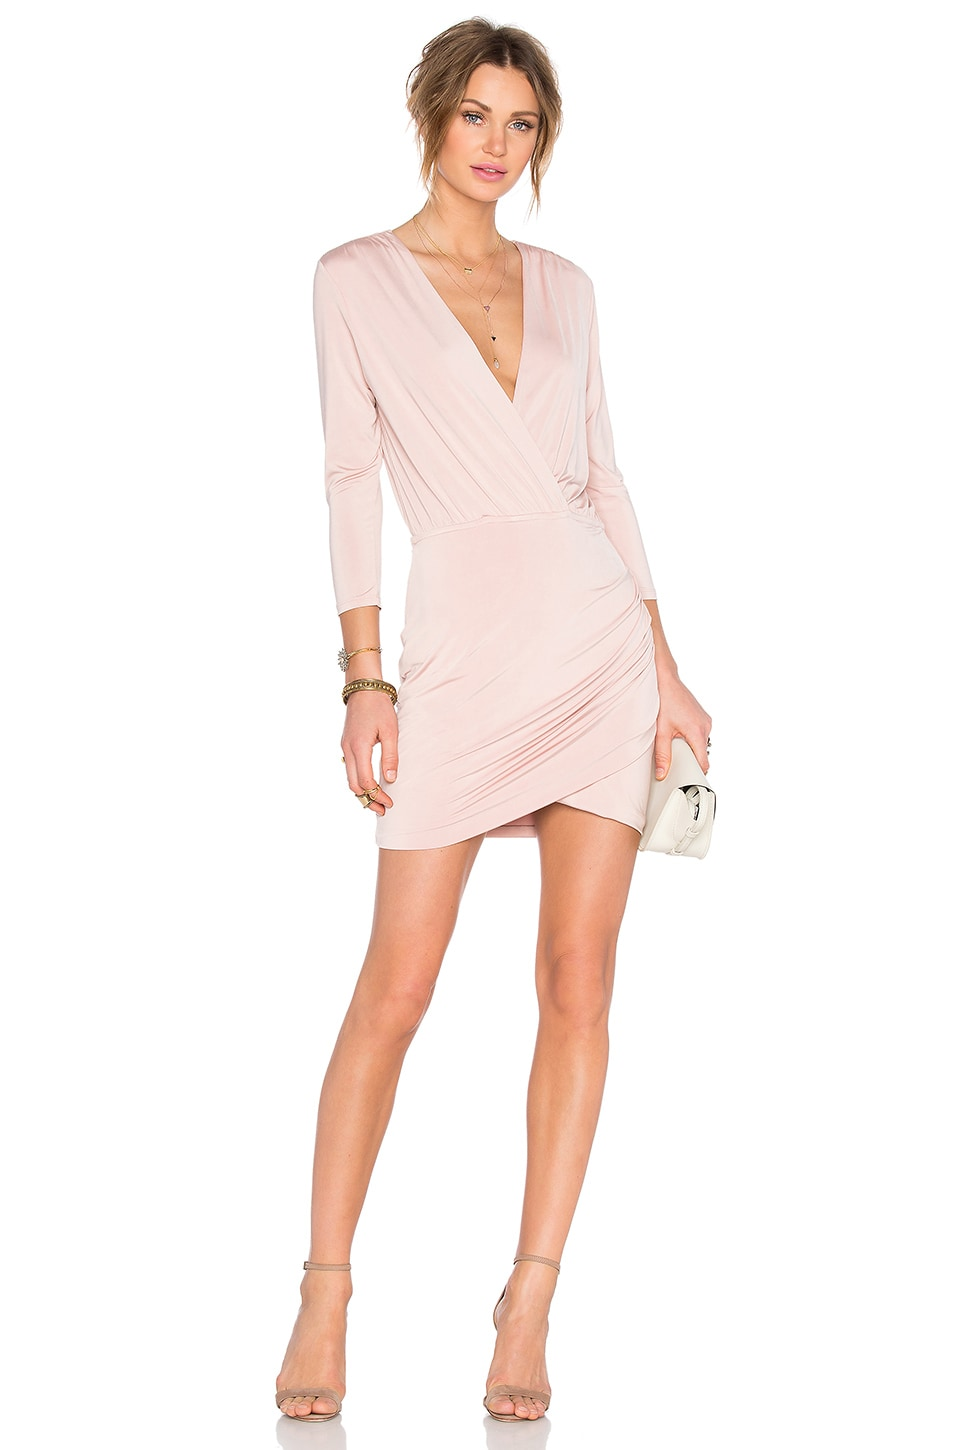 Lovers + Friends Love Happy Dress in Mauve